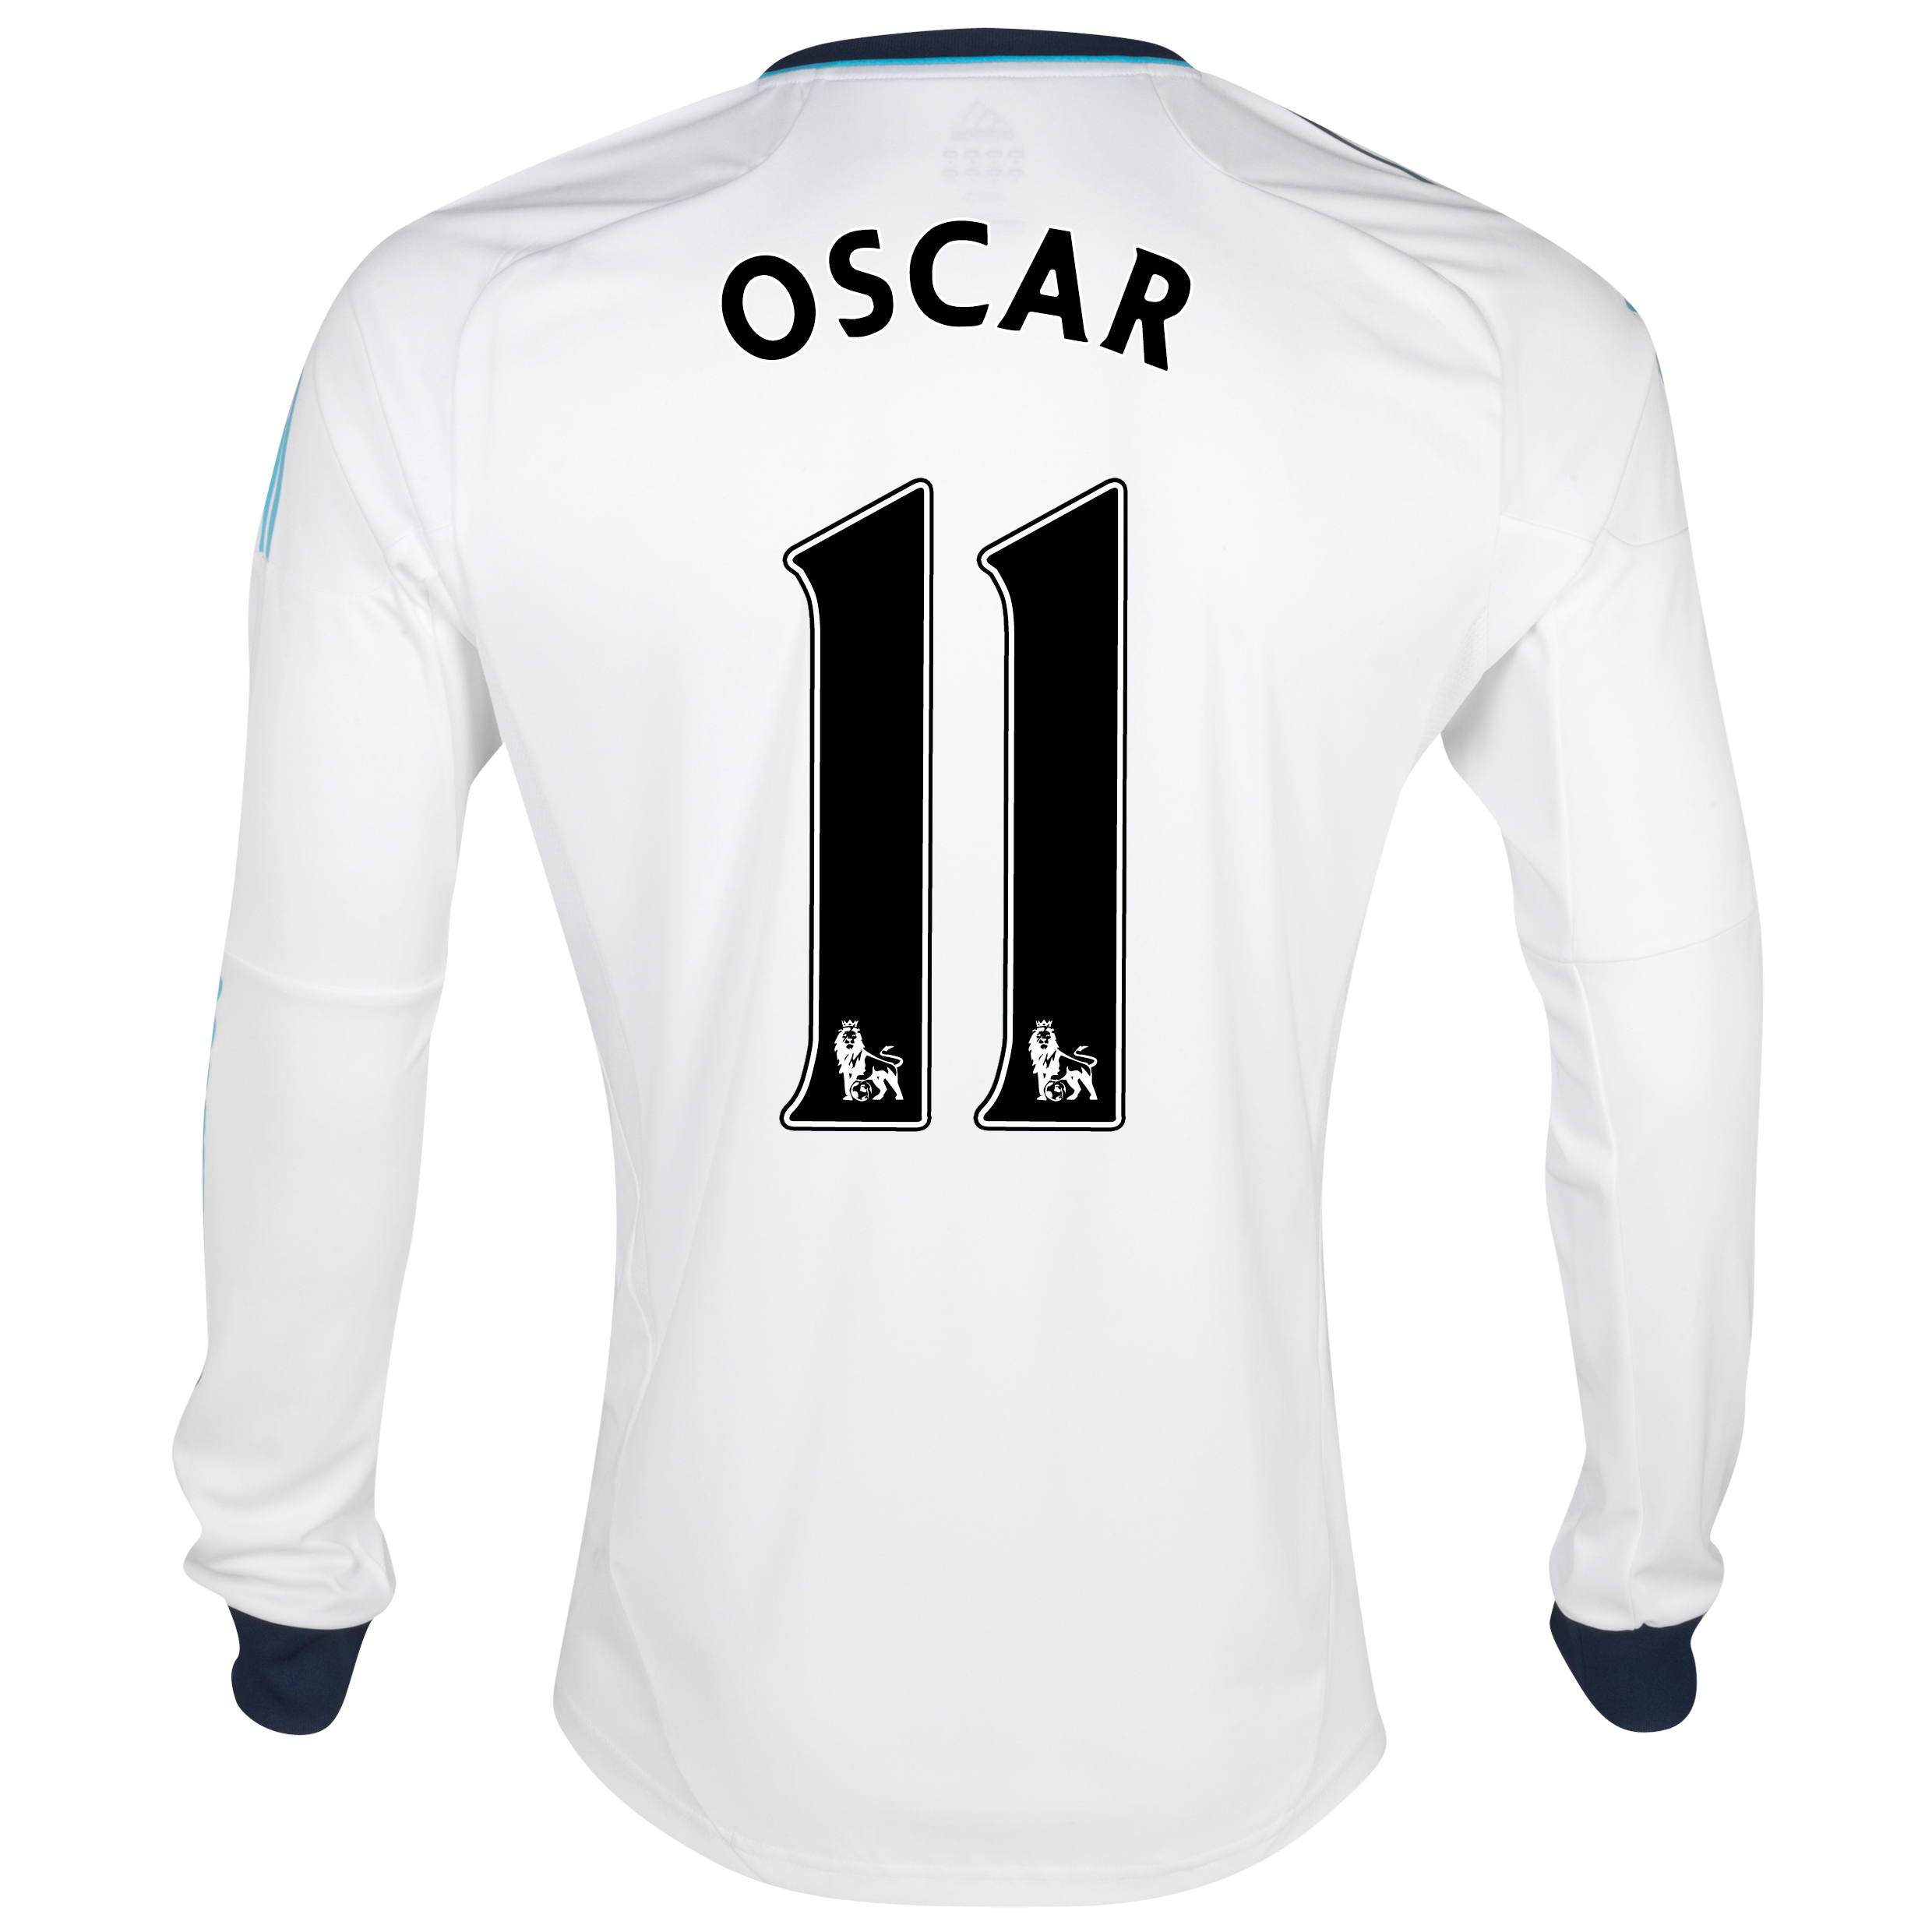 Chelsea Away Shirt 2012/13 - Long Sleeved  - Youths with Oscar 11 printing